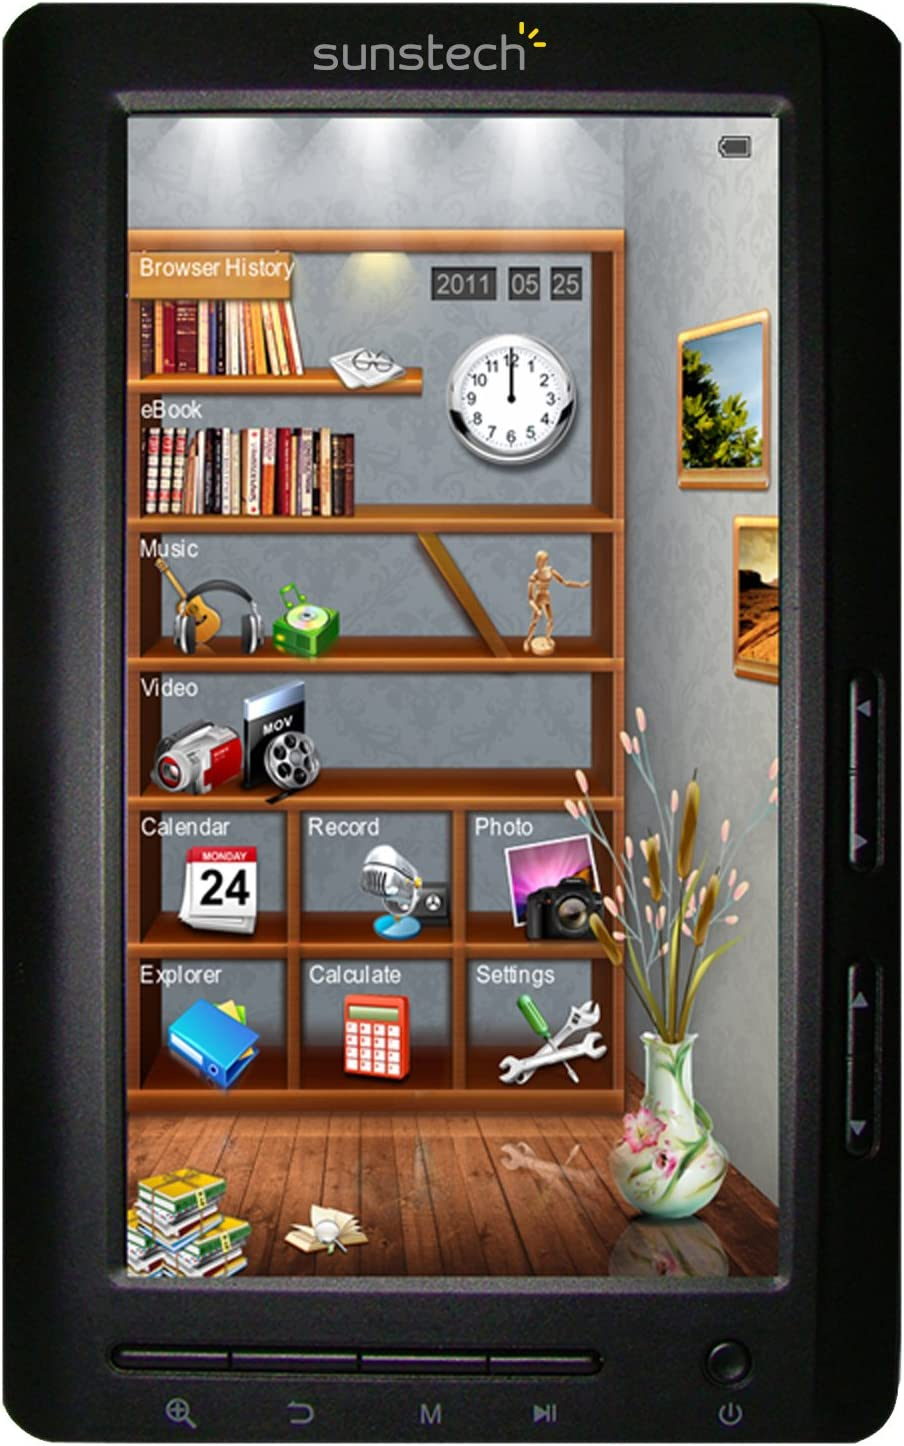 Sunstech EB7064GBBK - Lector de eBooks (pantalla de 7